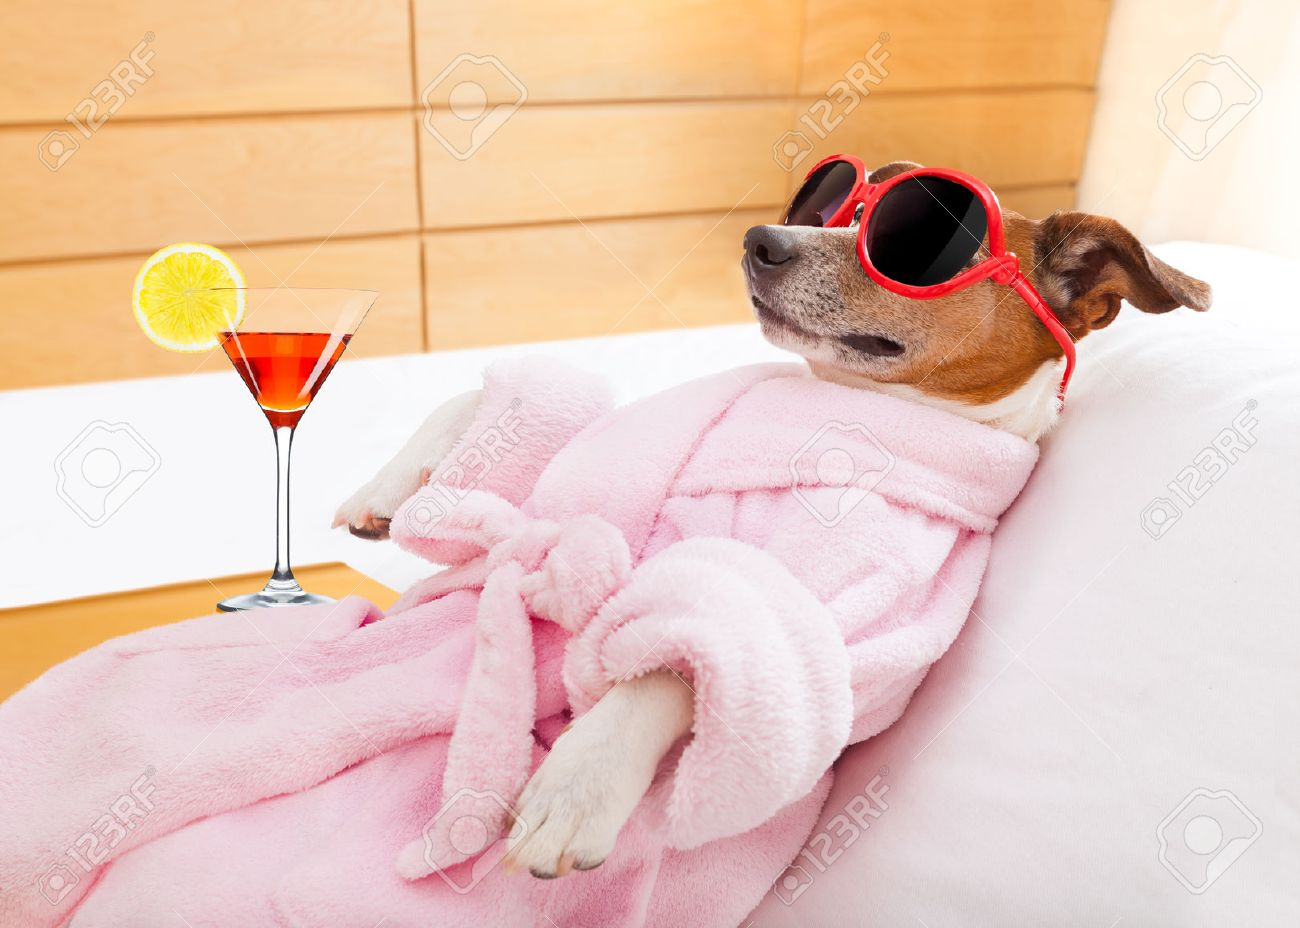 jack russell dog relaxing  and lying, in   spa wellness center ,wearing a  bathrobe and funny sunglasses , martini cocktail inlcuded Stock Photo - 41763459